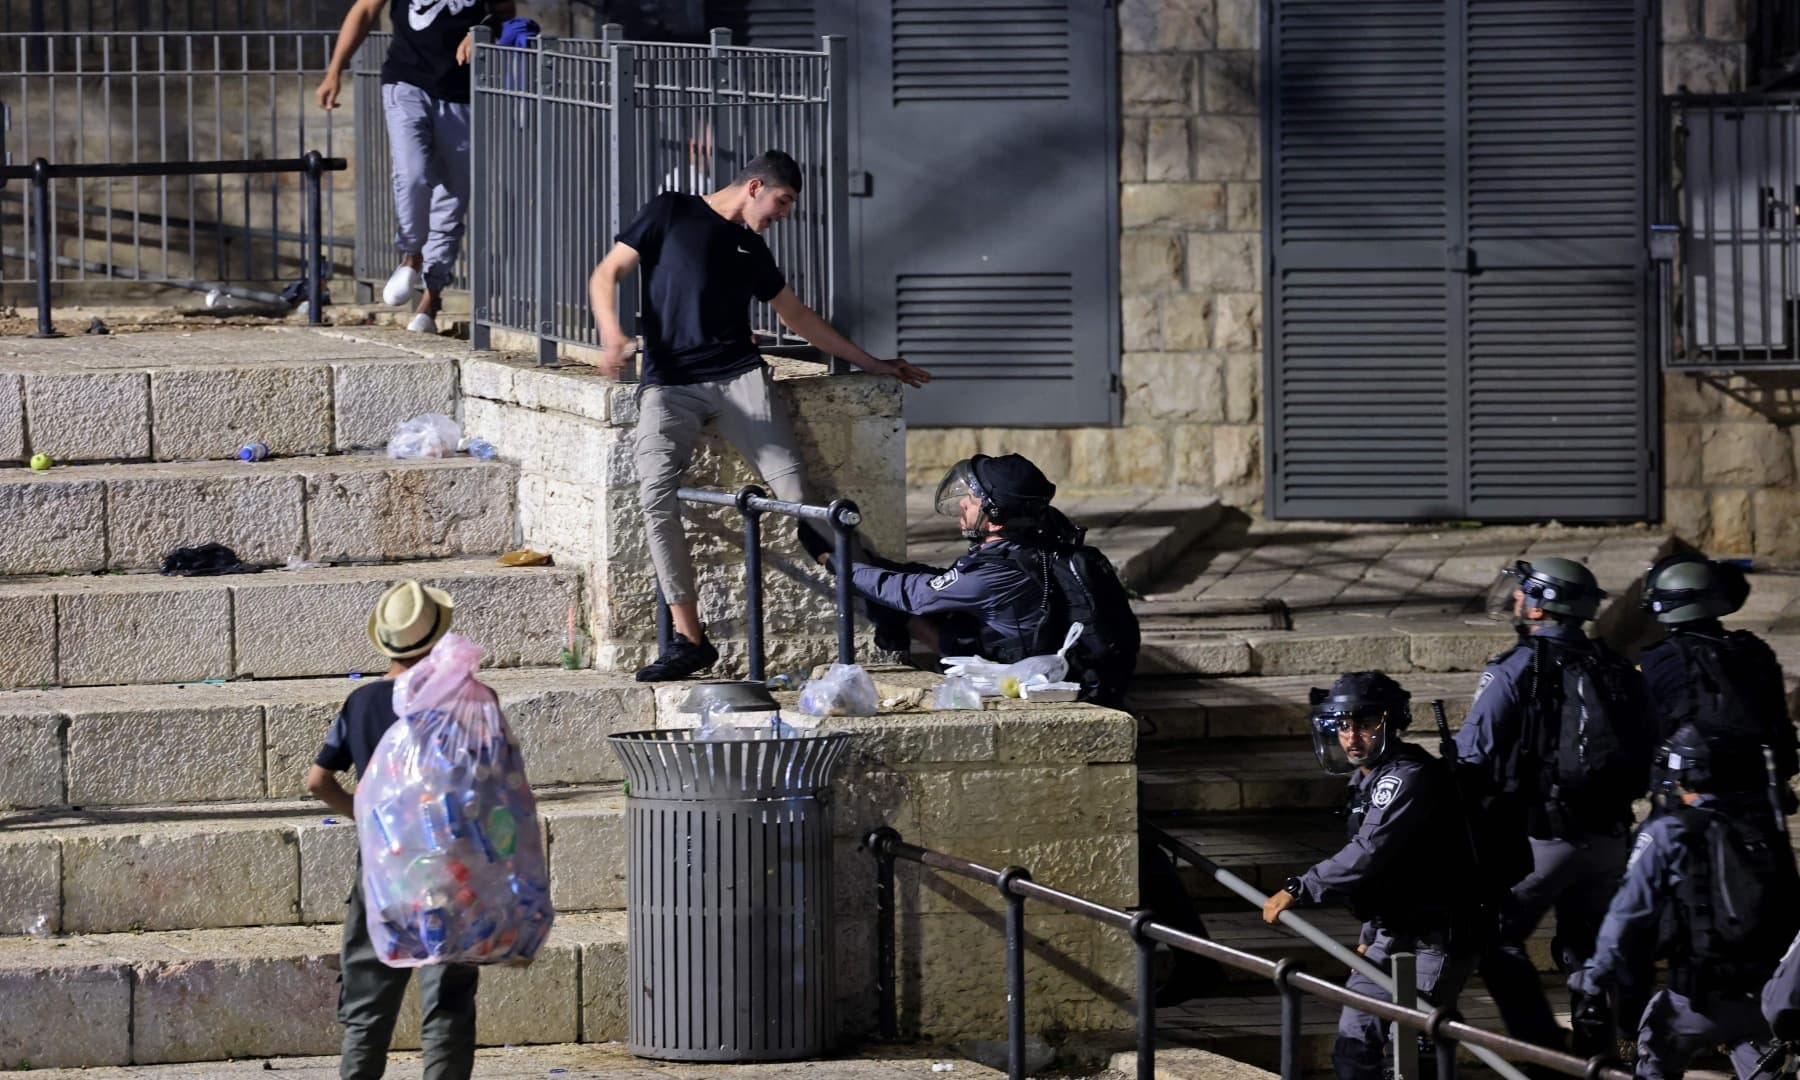 Israeli security forces try to detain a Palestinian protester outside the Damascus Gate in Jerusalem's Old City on May 8. — AFP